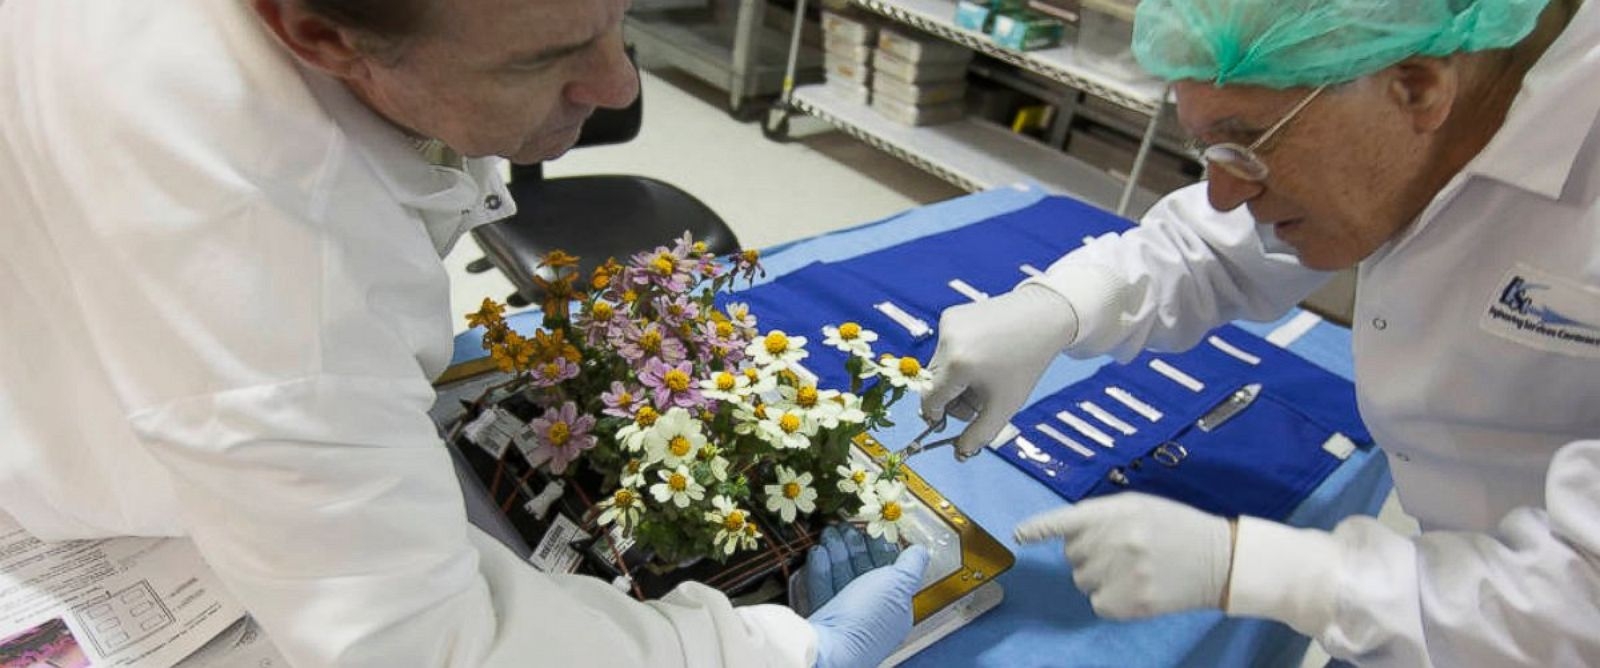 PHOTO: Zinnia plants from the Veggie ground control system are being harvested in the Flight Equipment Development Laboratory in the Space Station Processing Facility at NASA's Kennedy Space Center in Florida.